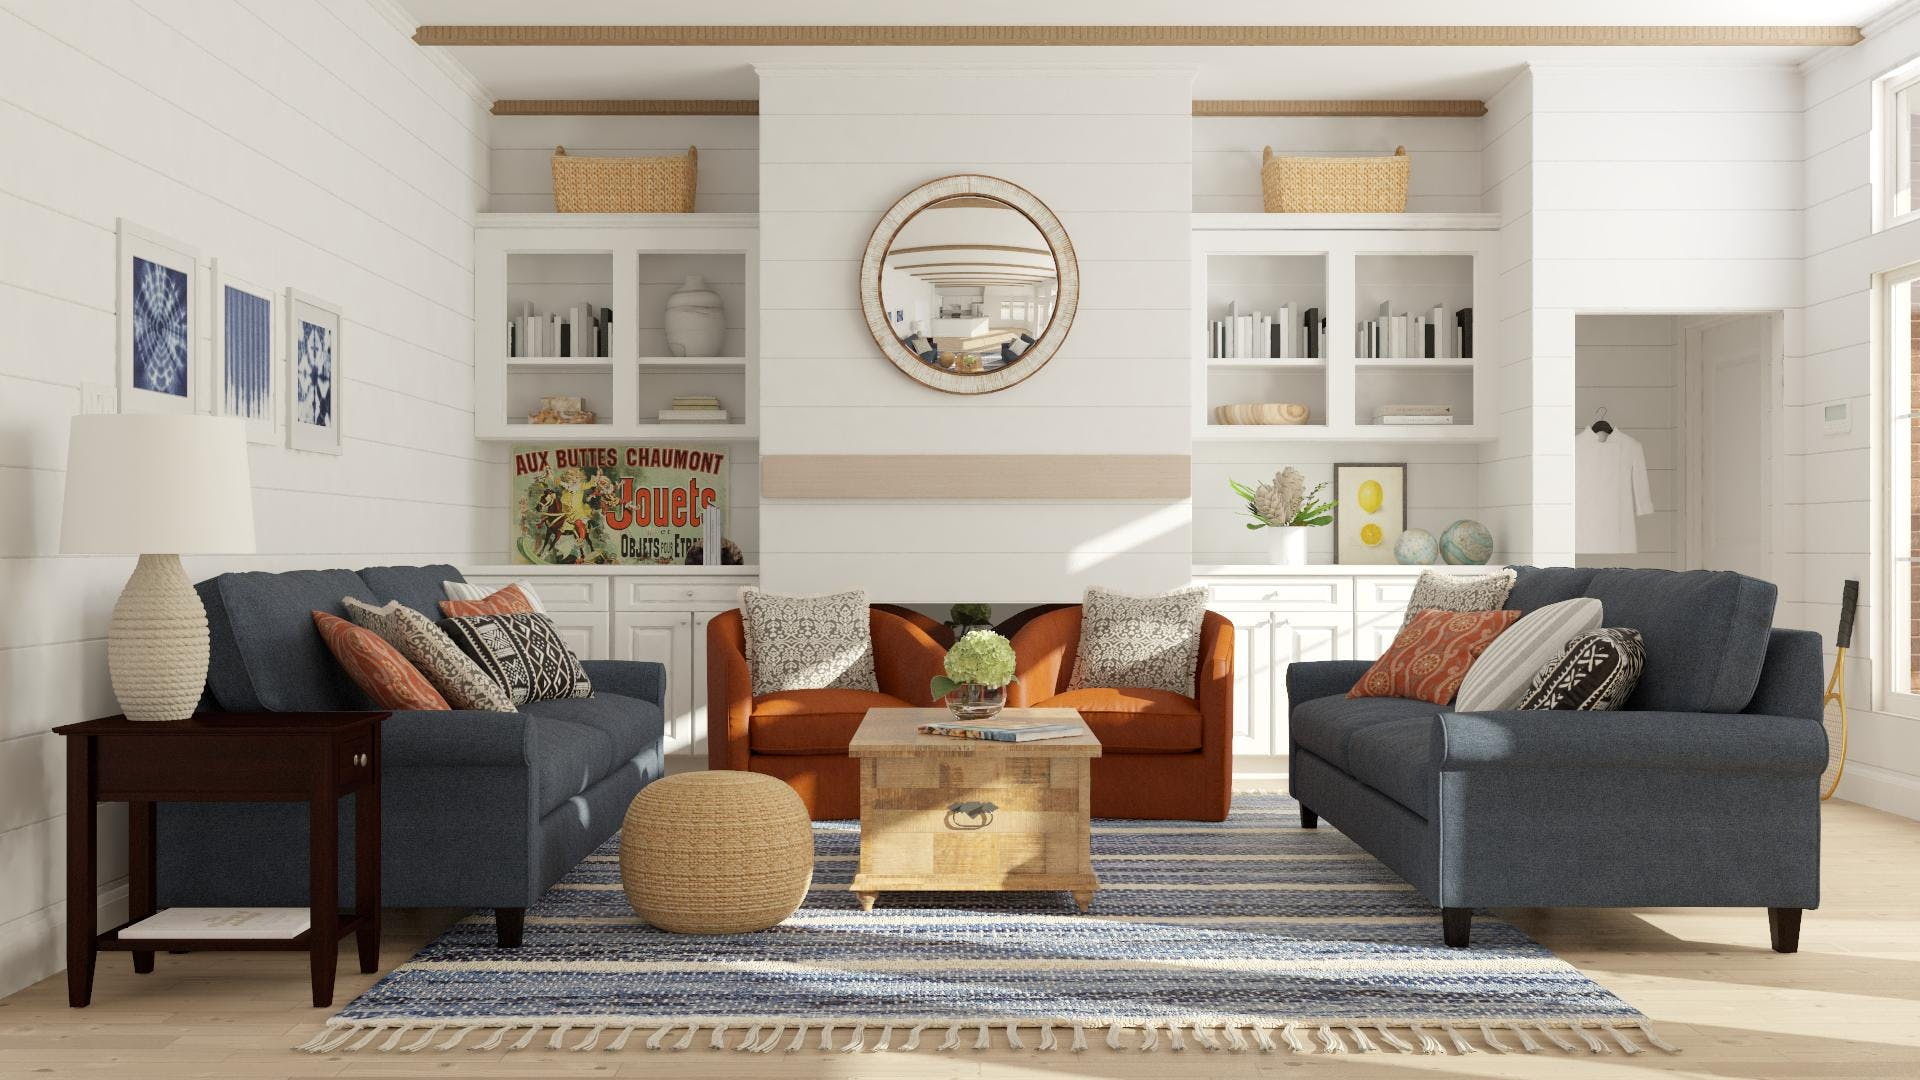 Stay A While: Living Room Design